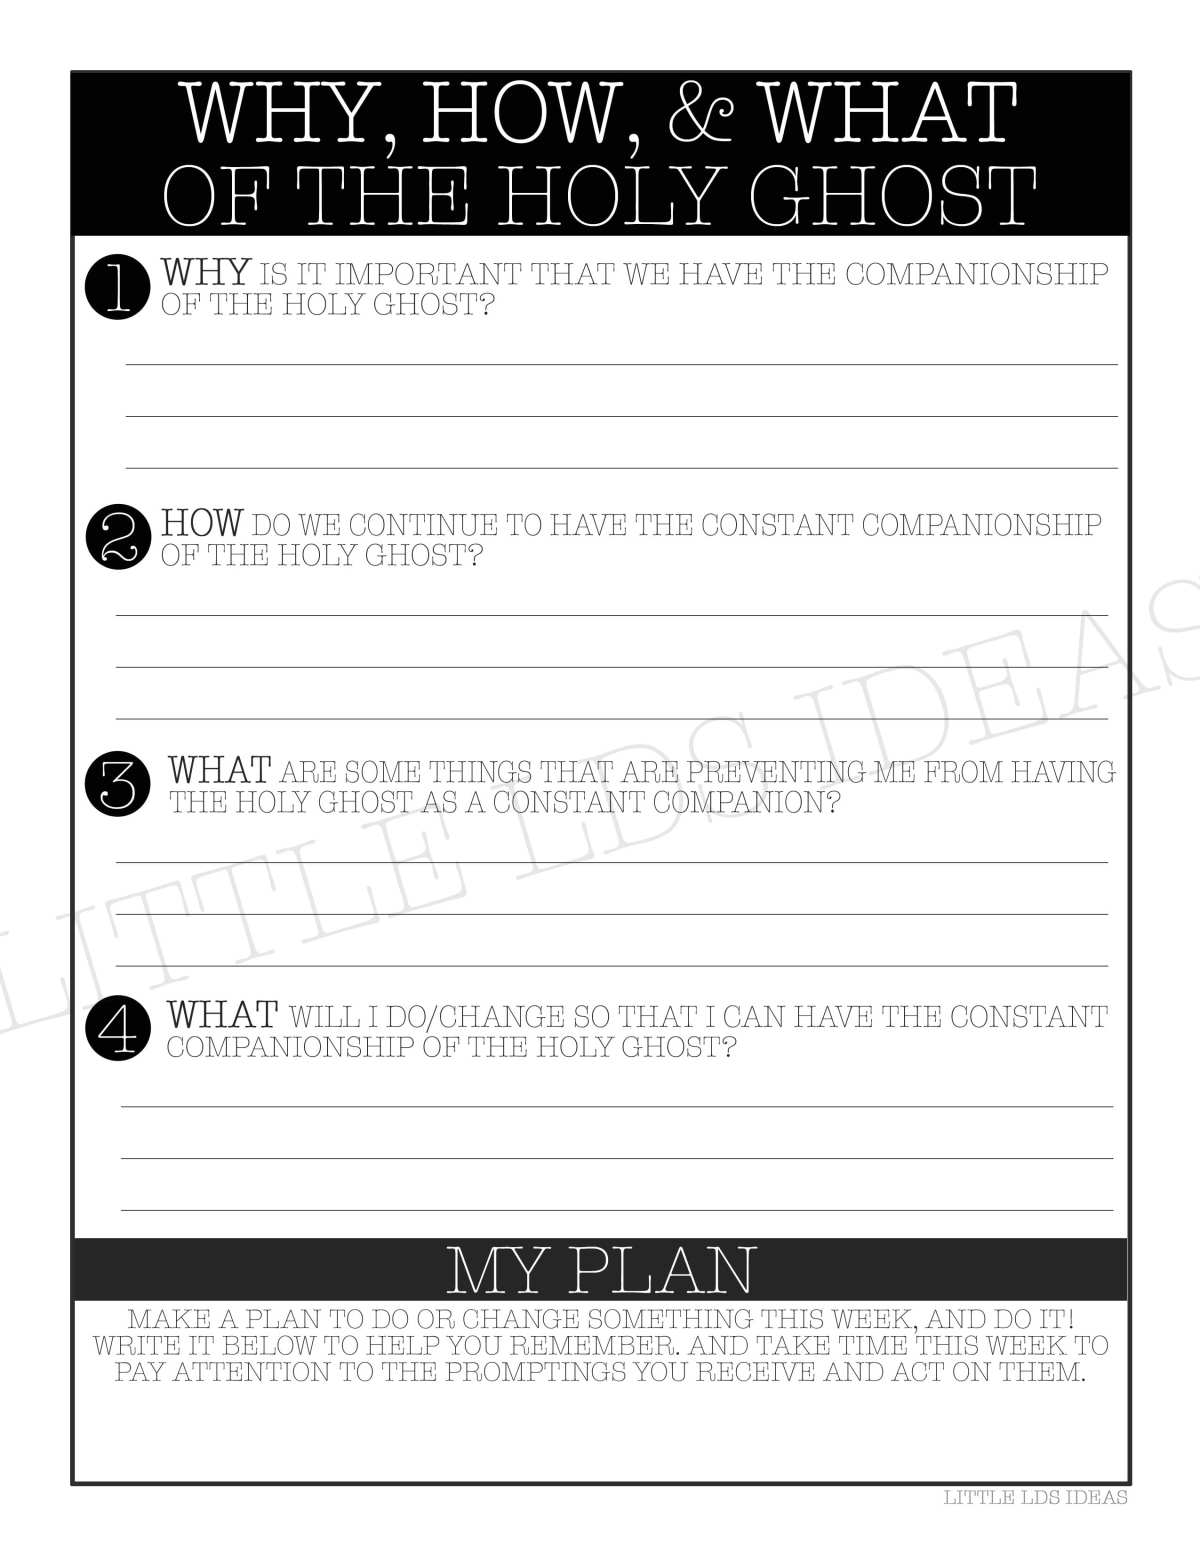 LDS Holy Ghost Teaching Tips